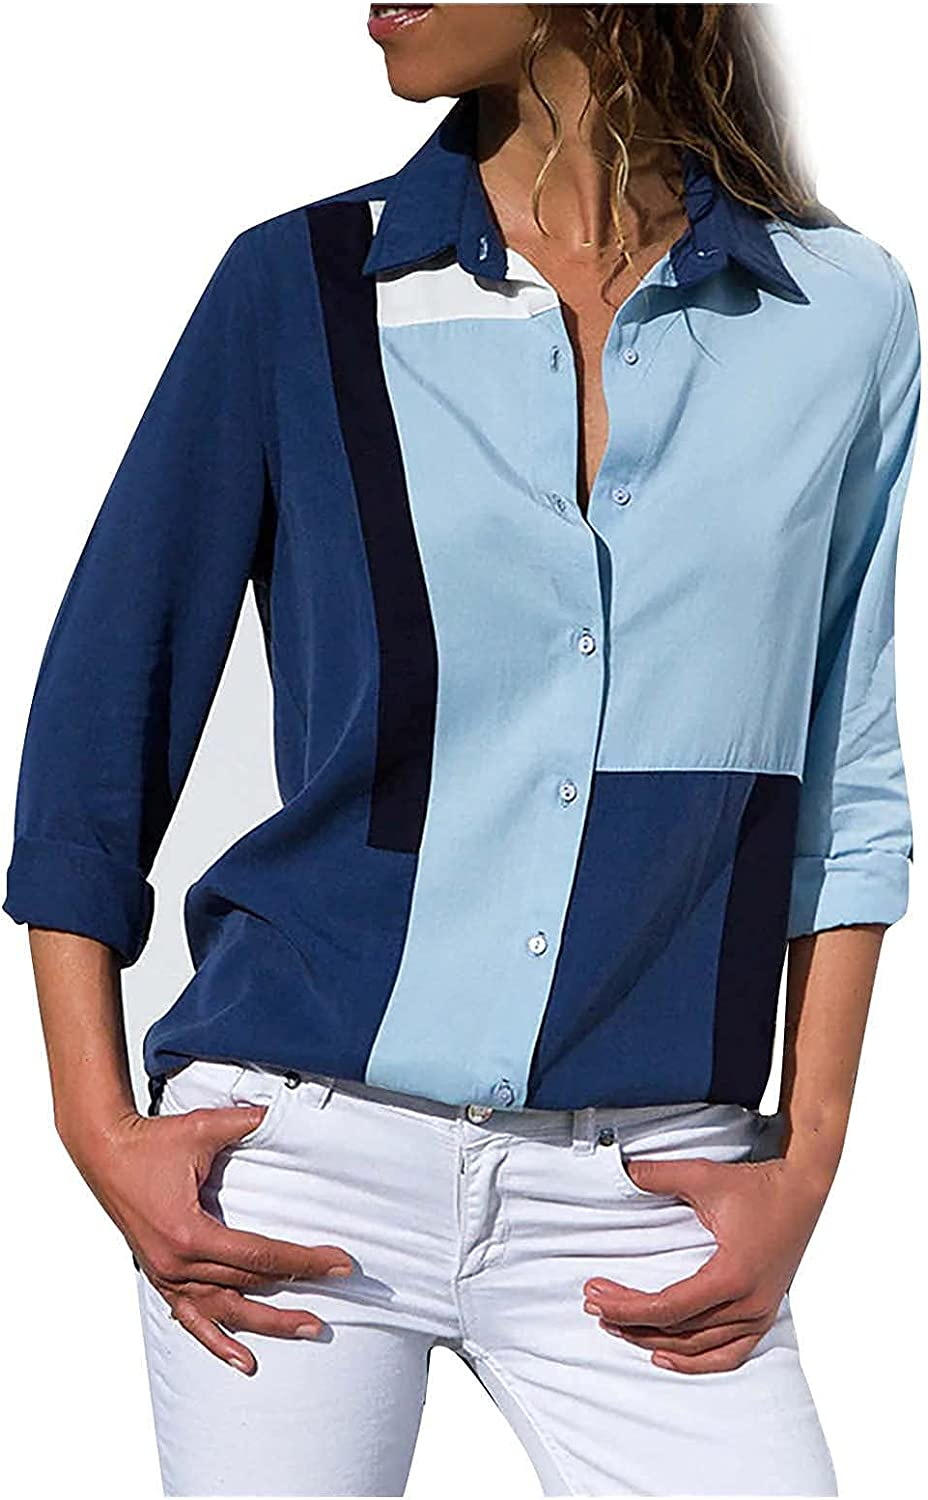 Shirts for Women Casual Chiffon Tops Trendy Striped Graphic Blouse Lapel Long Sleeve T Shirt Comfy Button Down Tees